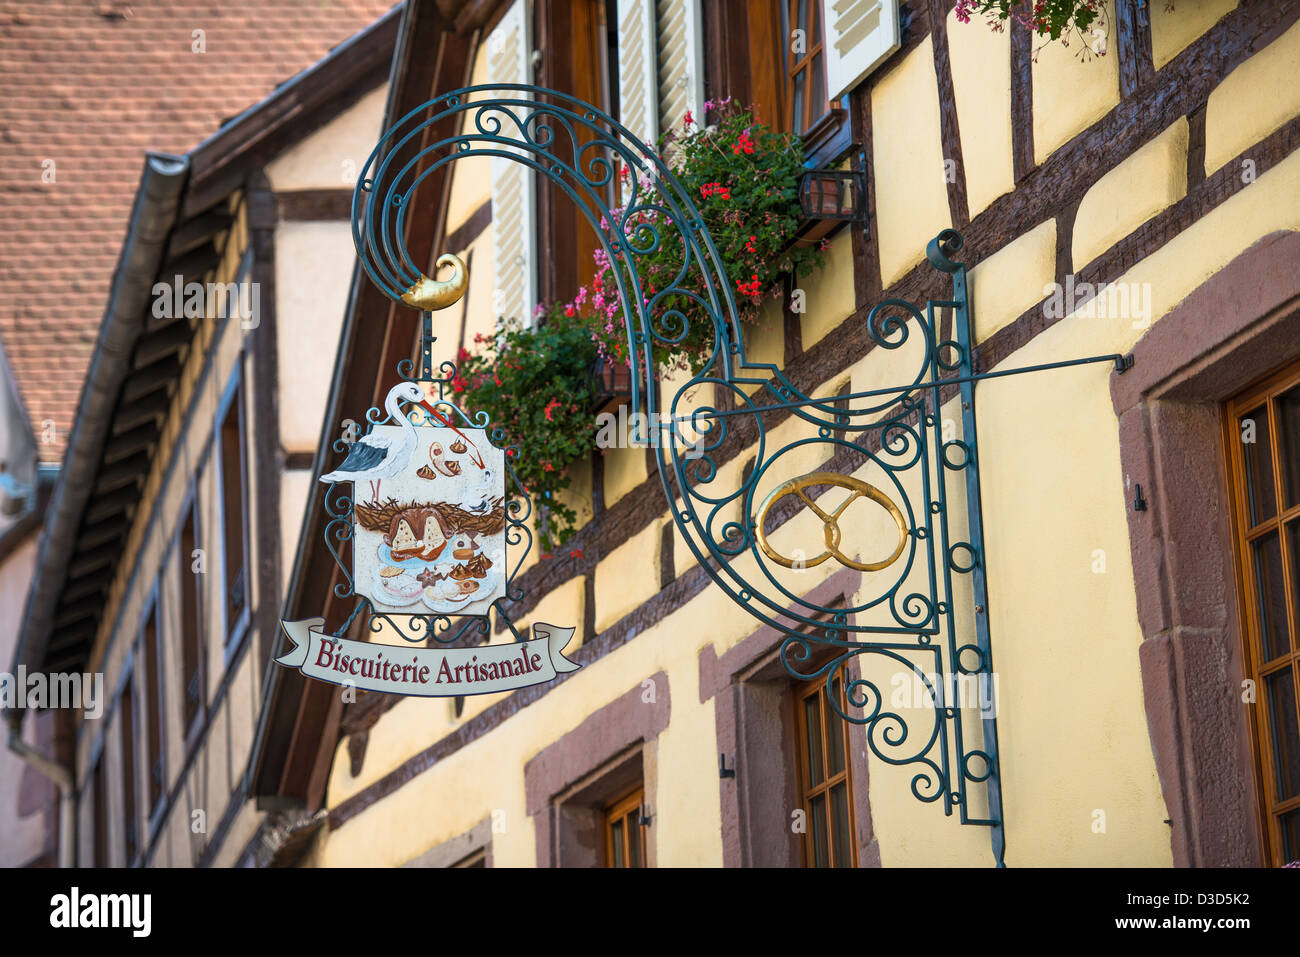 Inn sign of Biscuitere Artisanale in Kaysersberg, along the Wine Route, Alsace Haut-Rhin France Stock Photo